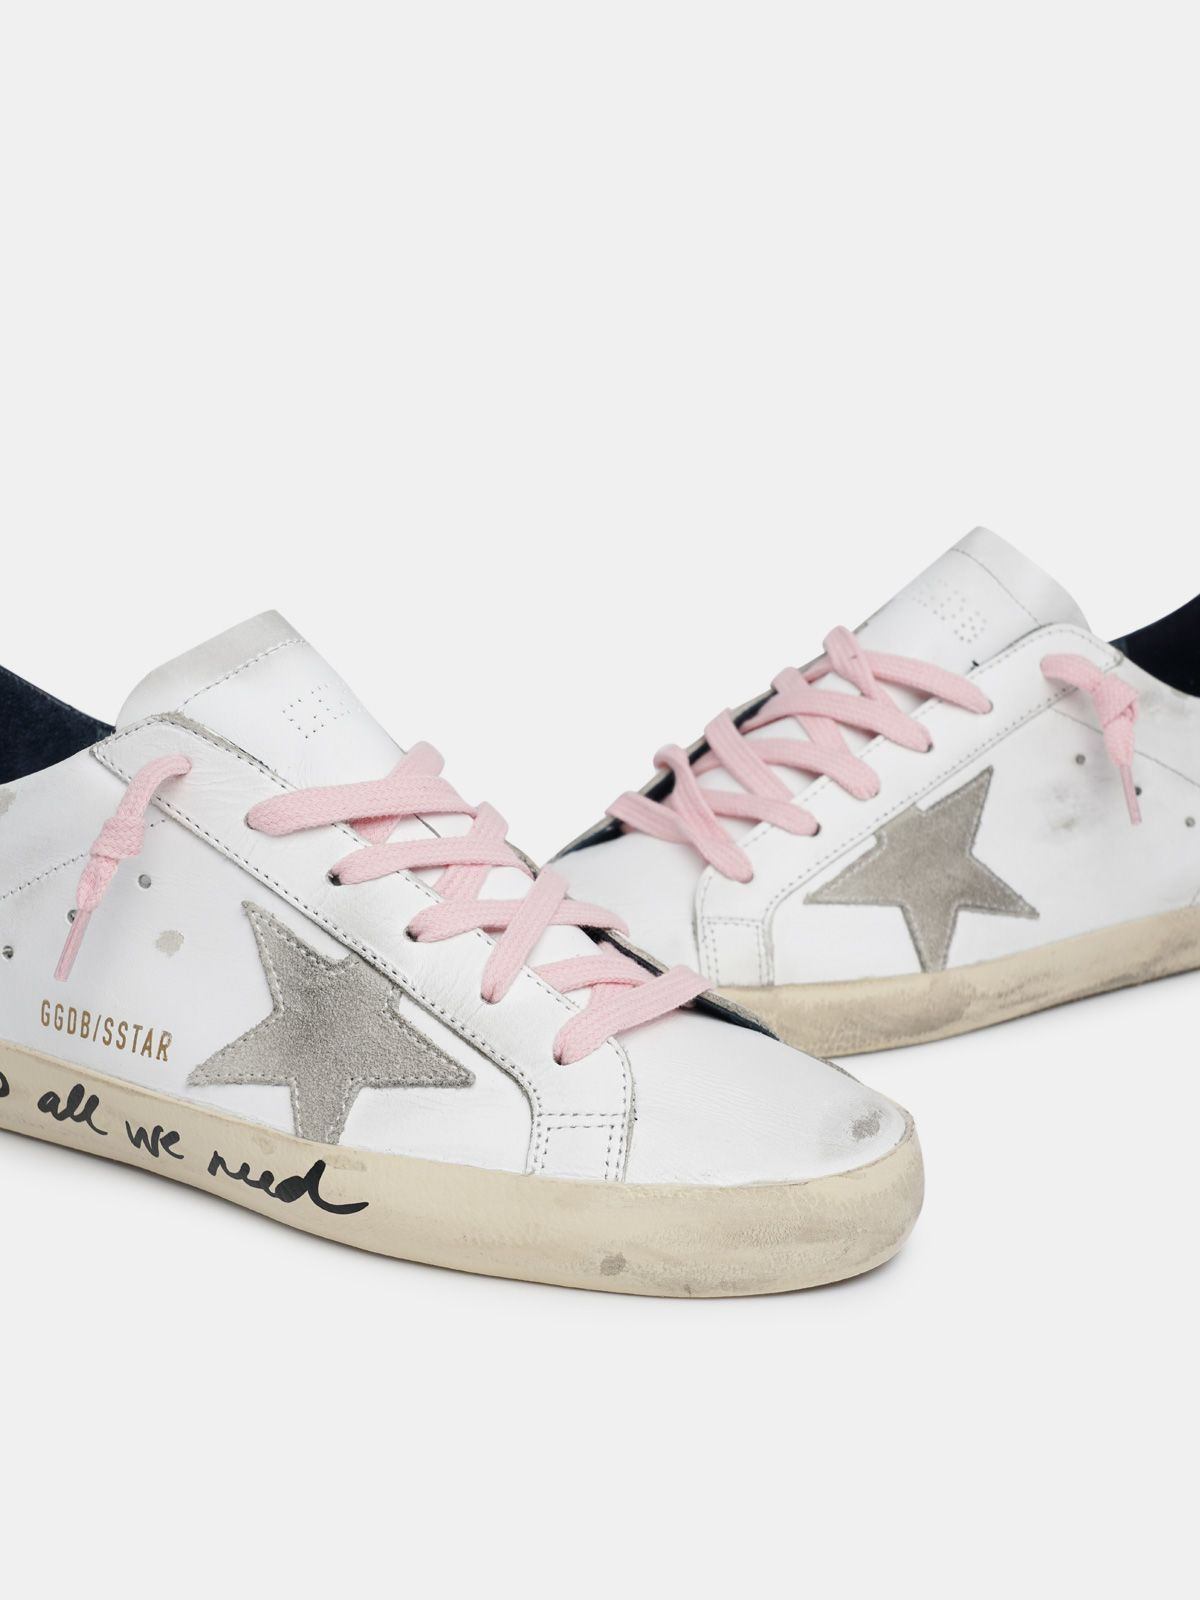 Golden Goose - Super-Star sneakers with handwritten Love is all we need lettering in